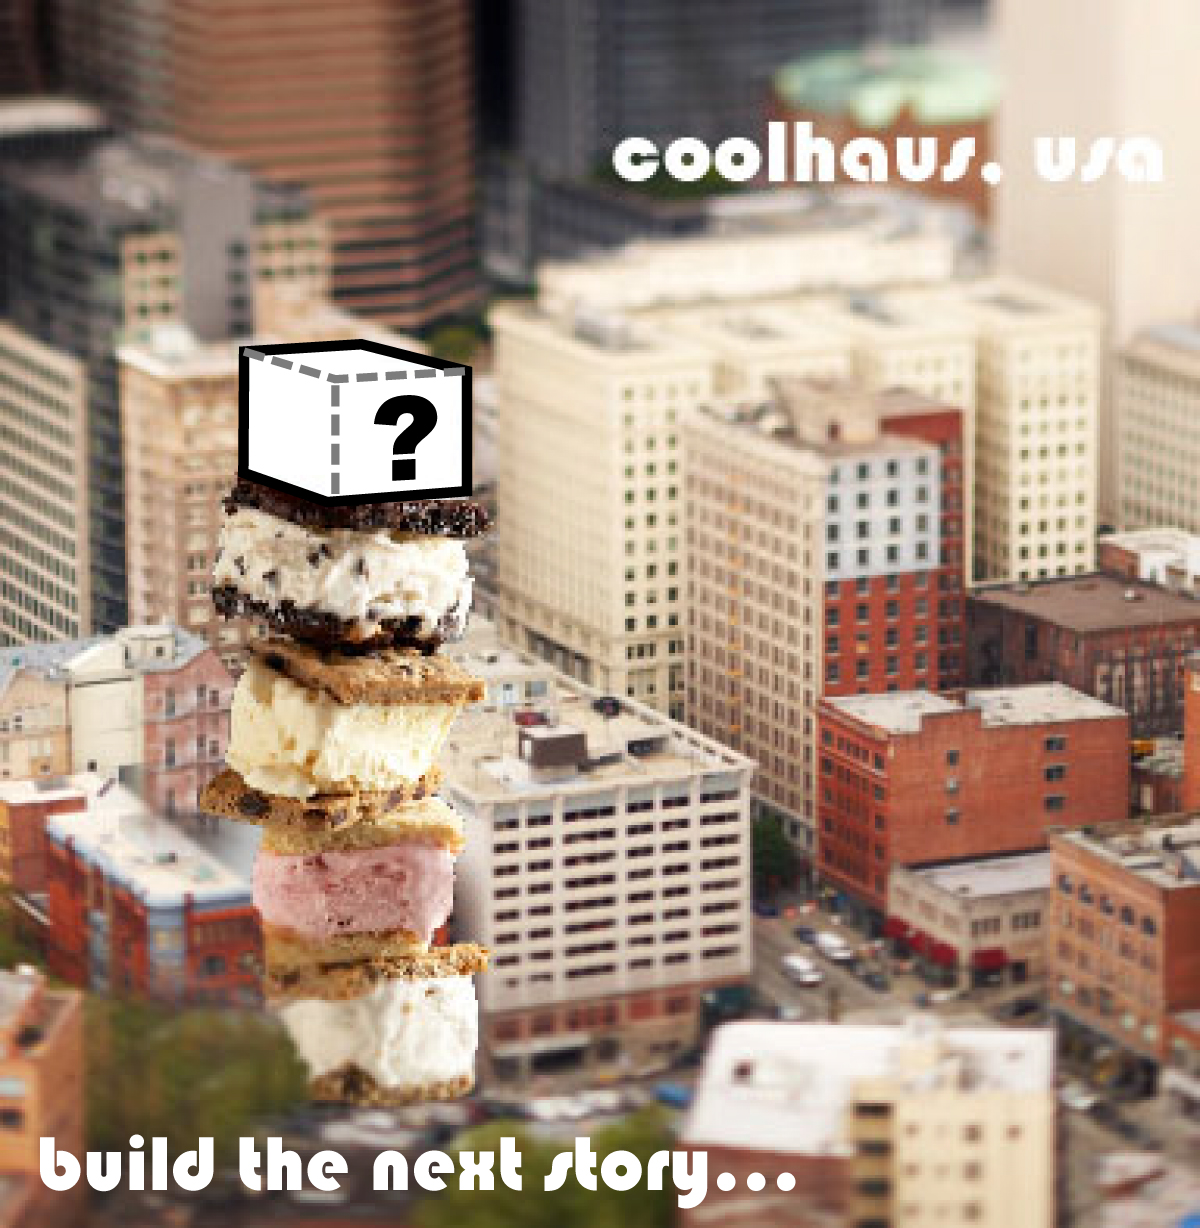 coolhaus dwell contest